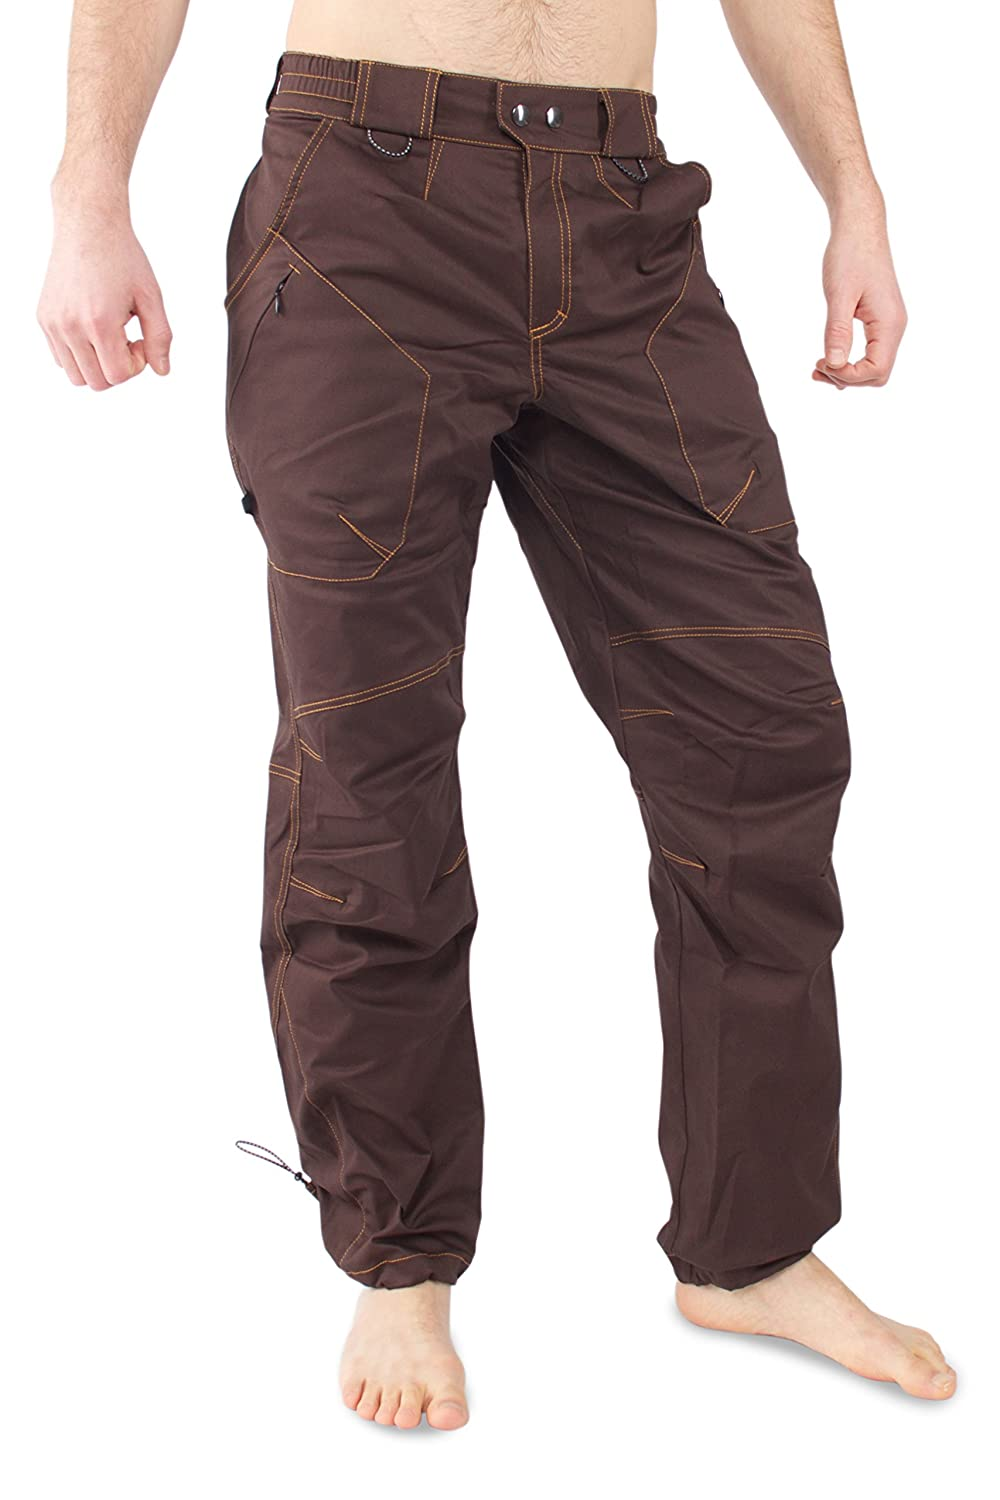 Ucraft Terra Rock Climbing and Bouldering Pants. Quick Drying, Durable, Stretching Anatomic (S terracotta) Ucraft climbing